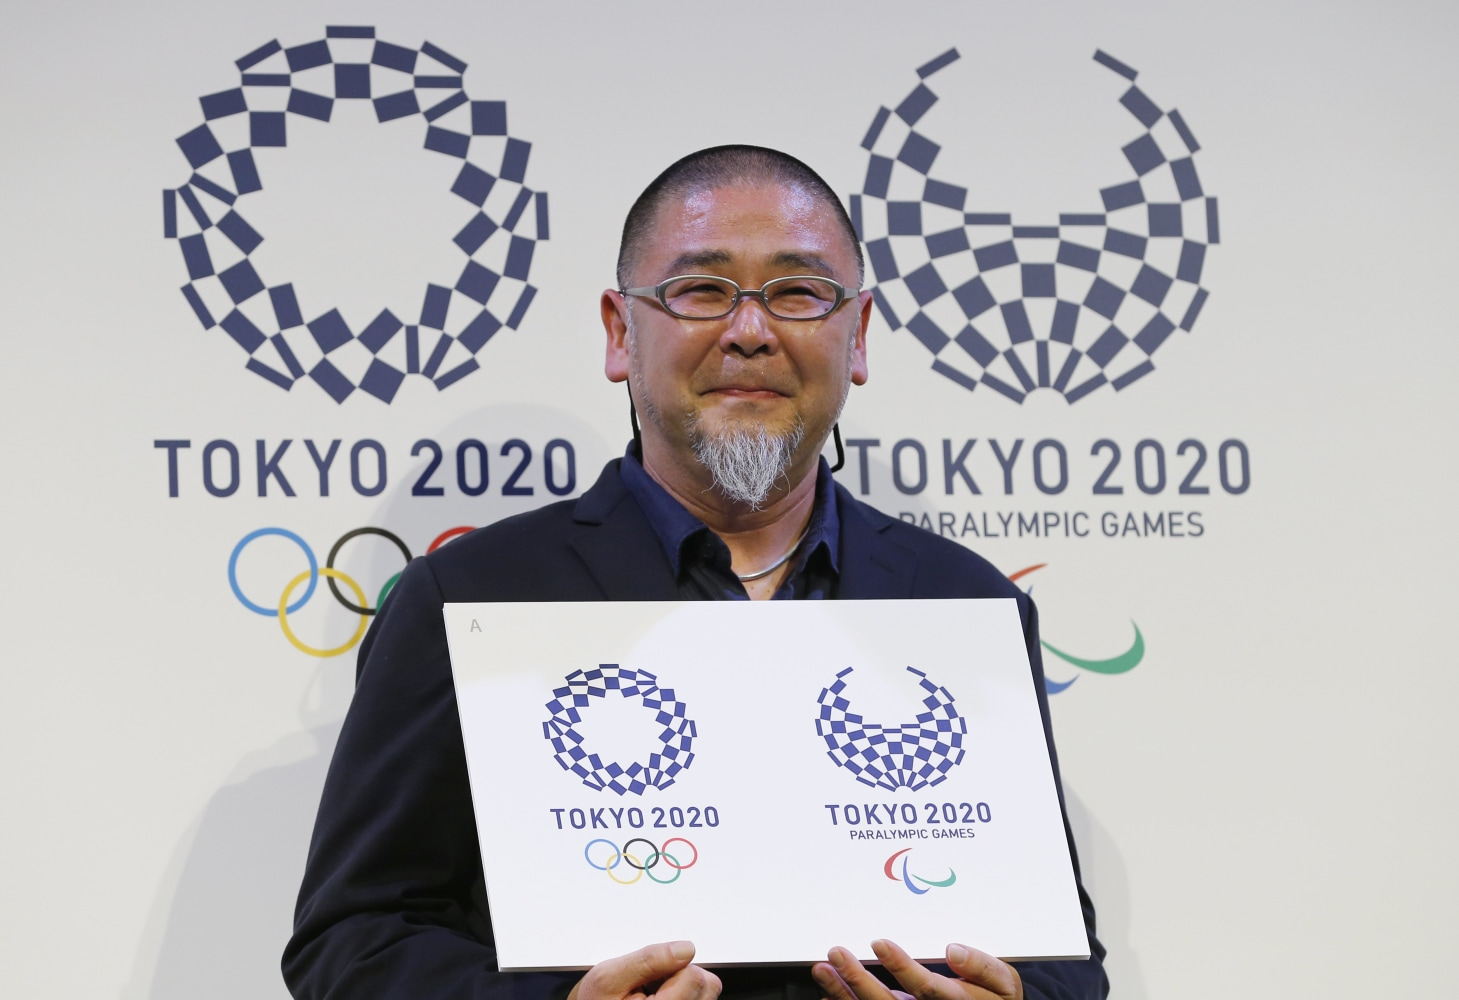 ... 2020 Tokyo Olympics, left, and the 2020 Tokyo Paralympic Games. Shizuo